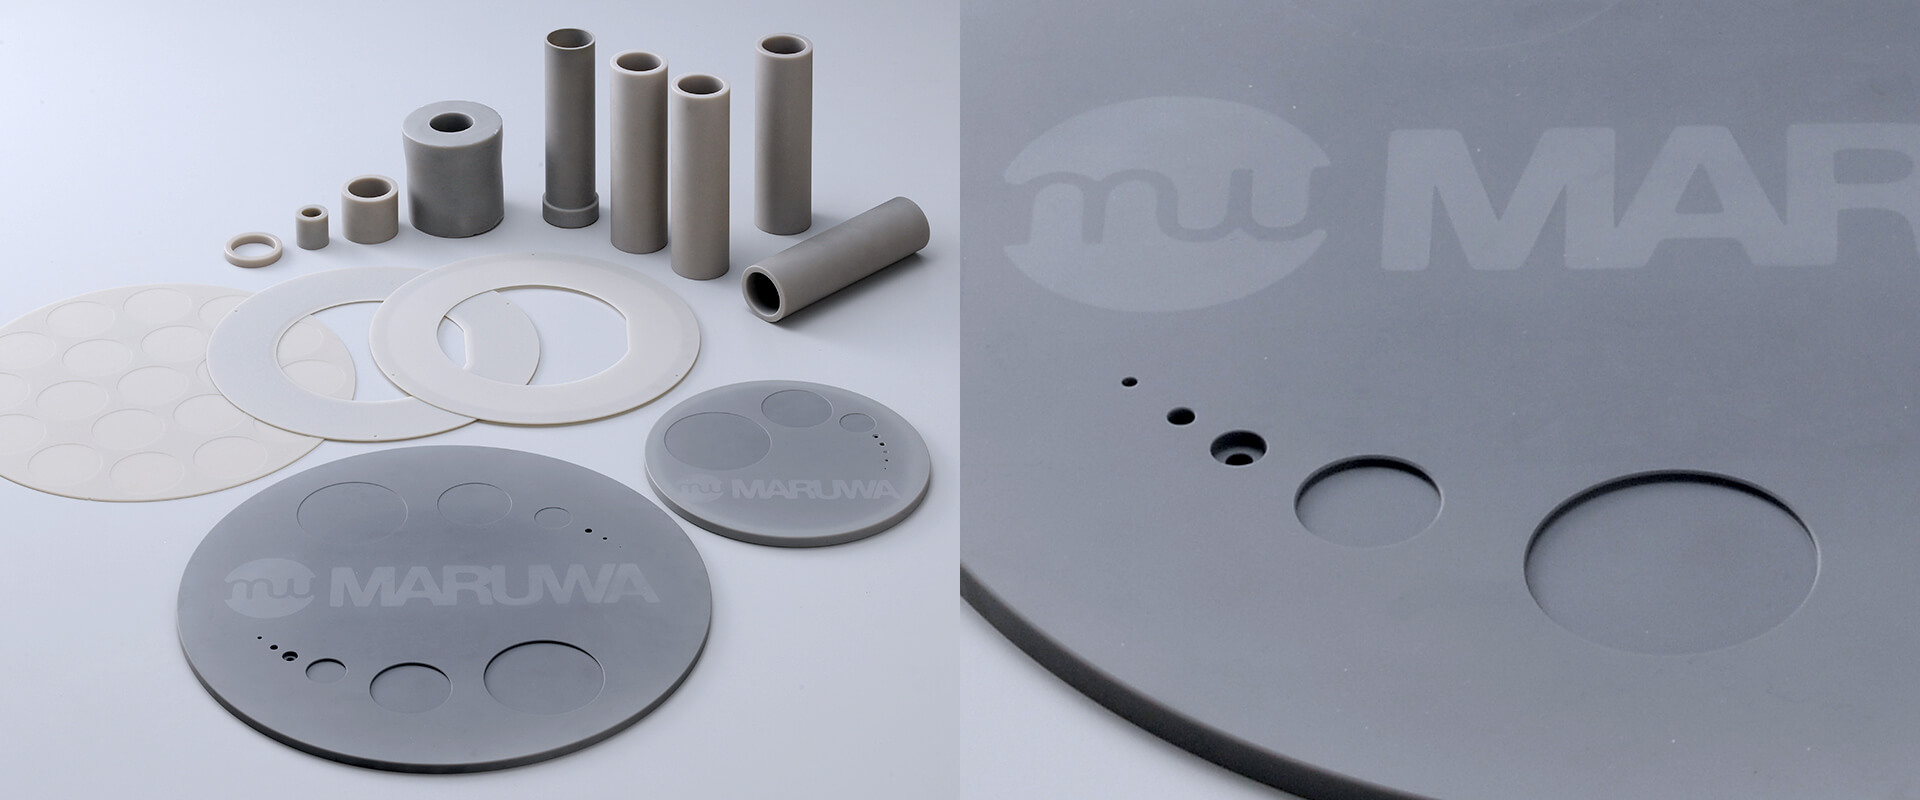 Aluminum Nitride (AlN) Parts for Semiconductor Manufacturing